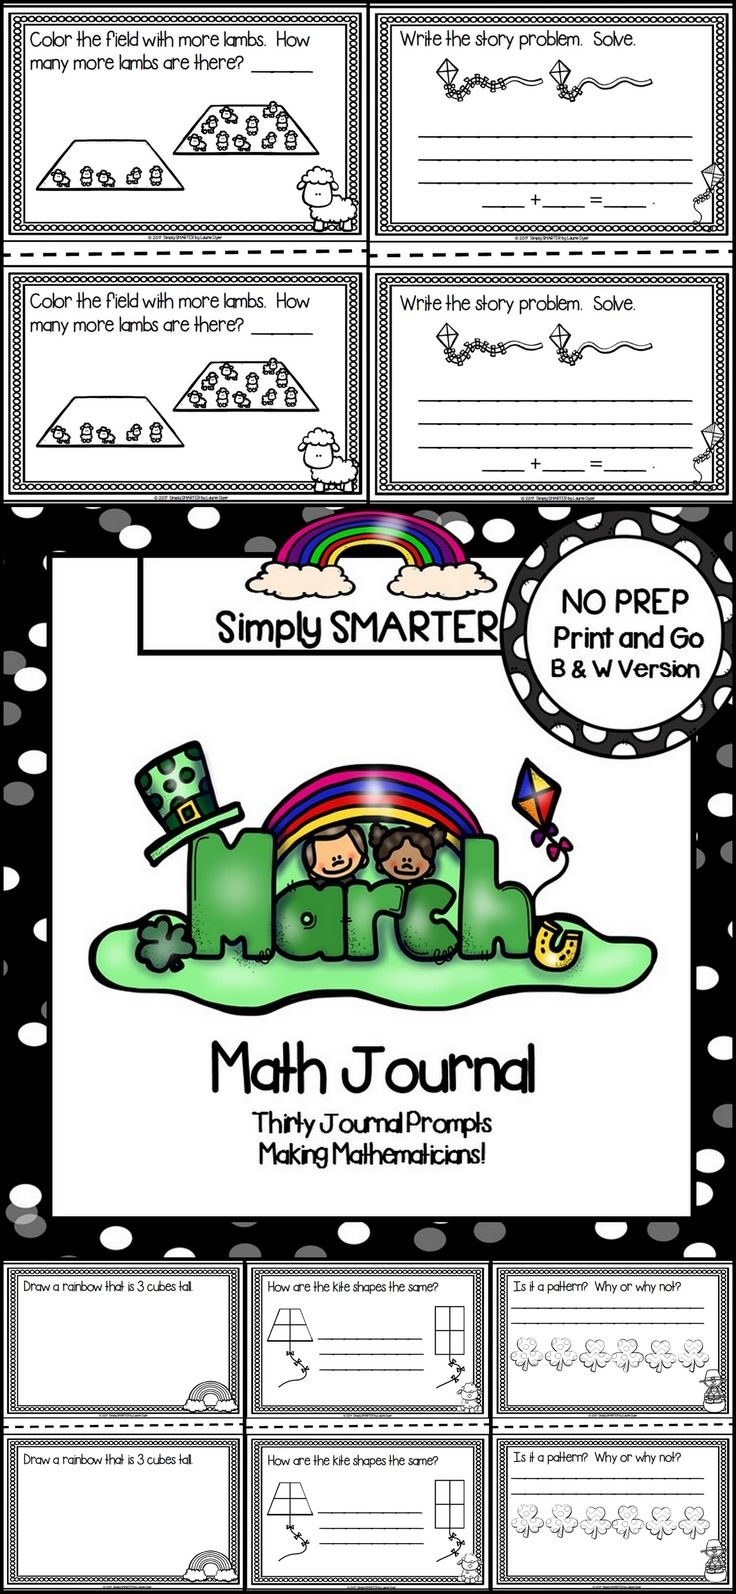 Are you looking for a NO PREP math activity for preschool, kindergarten, or first grade? Then enjoy this math journal which is comprised of THIRTY MARCH (ST. PATRICK'S DAY, KITES, WEATHER, AND LIONS AND LAMBS) themed MATH JOURNAL PROMPTS. The journal prompts can be used for guided math, math centers, independent work, buddy work, and homework. The journal pages can be chosen by the teacher to best meet the needs of the student and assembled into a journal with the provided cover.